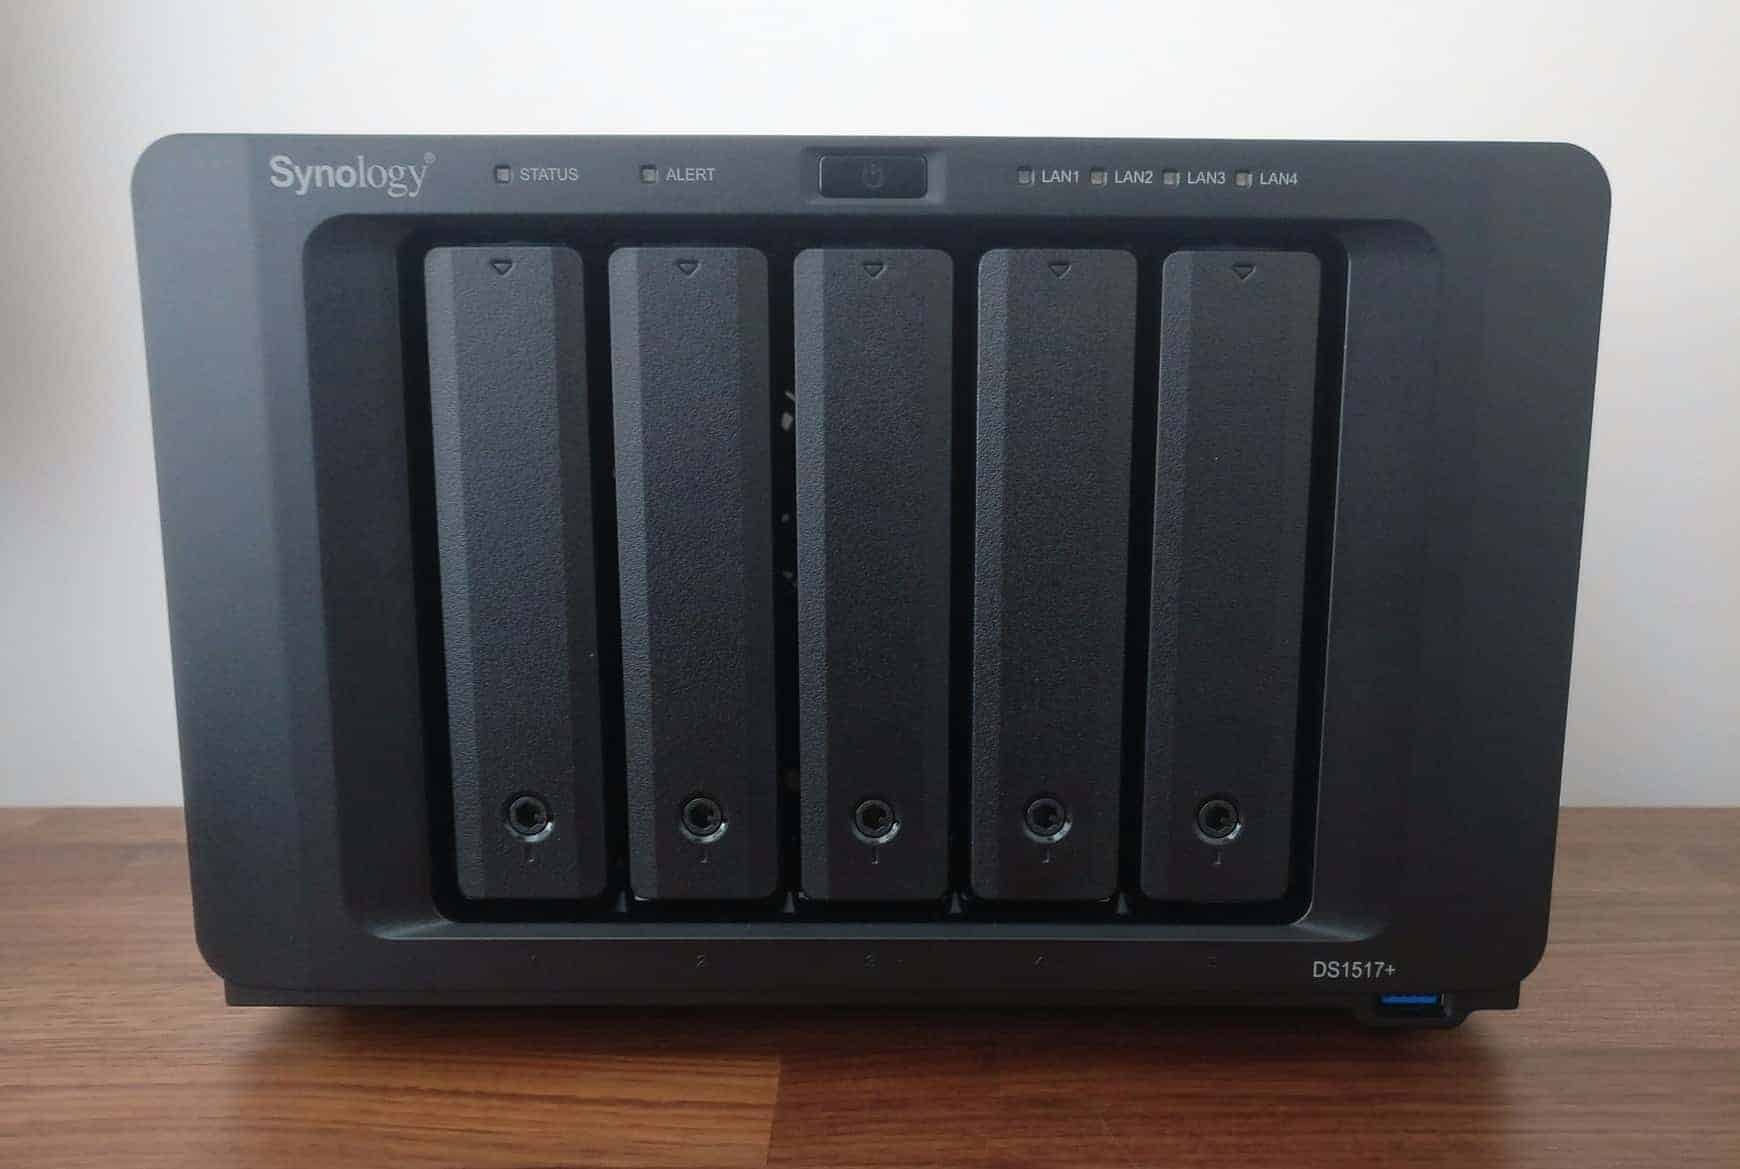 Synology-DS1517-Screens27 Synology DS1517+ 5 Bay NAS Review